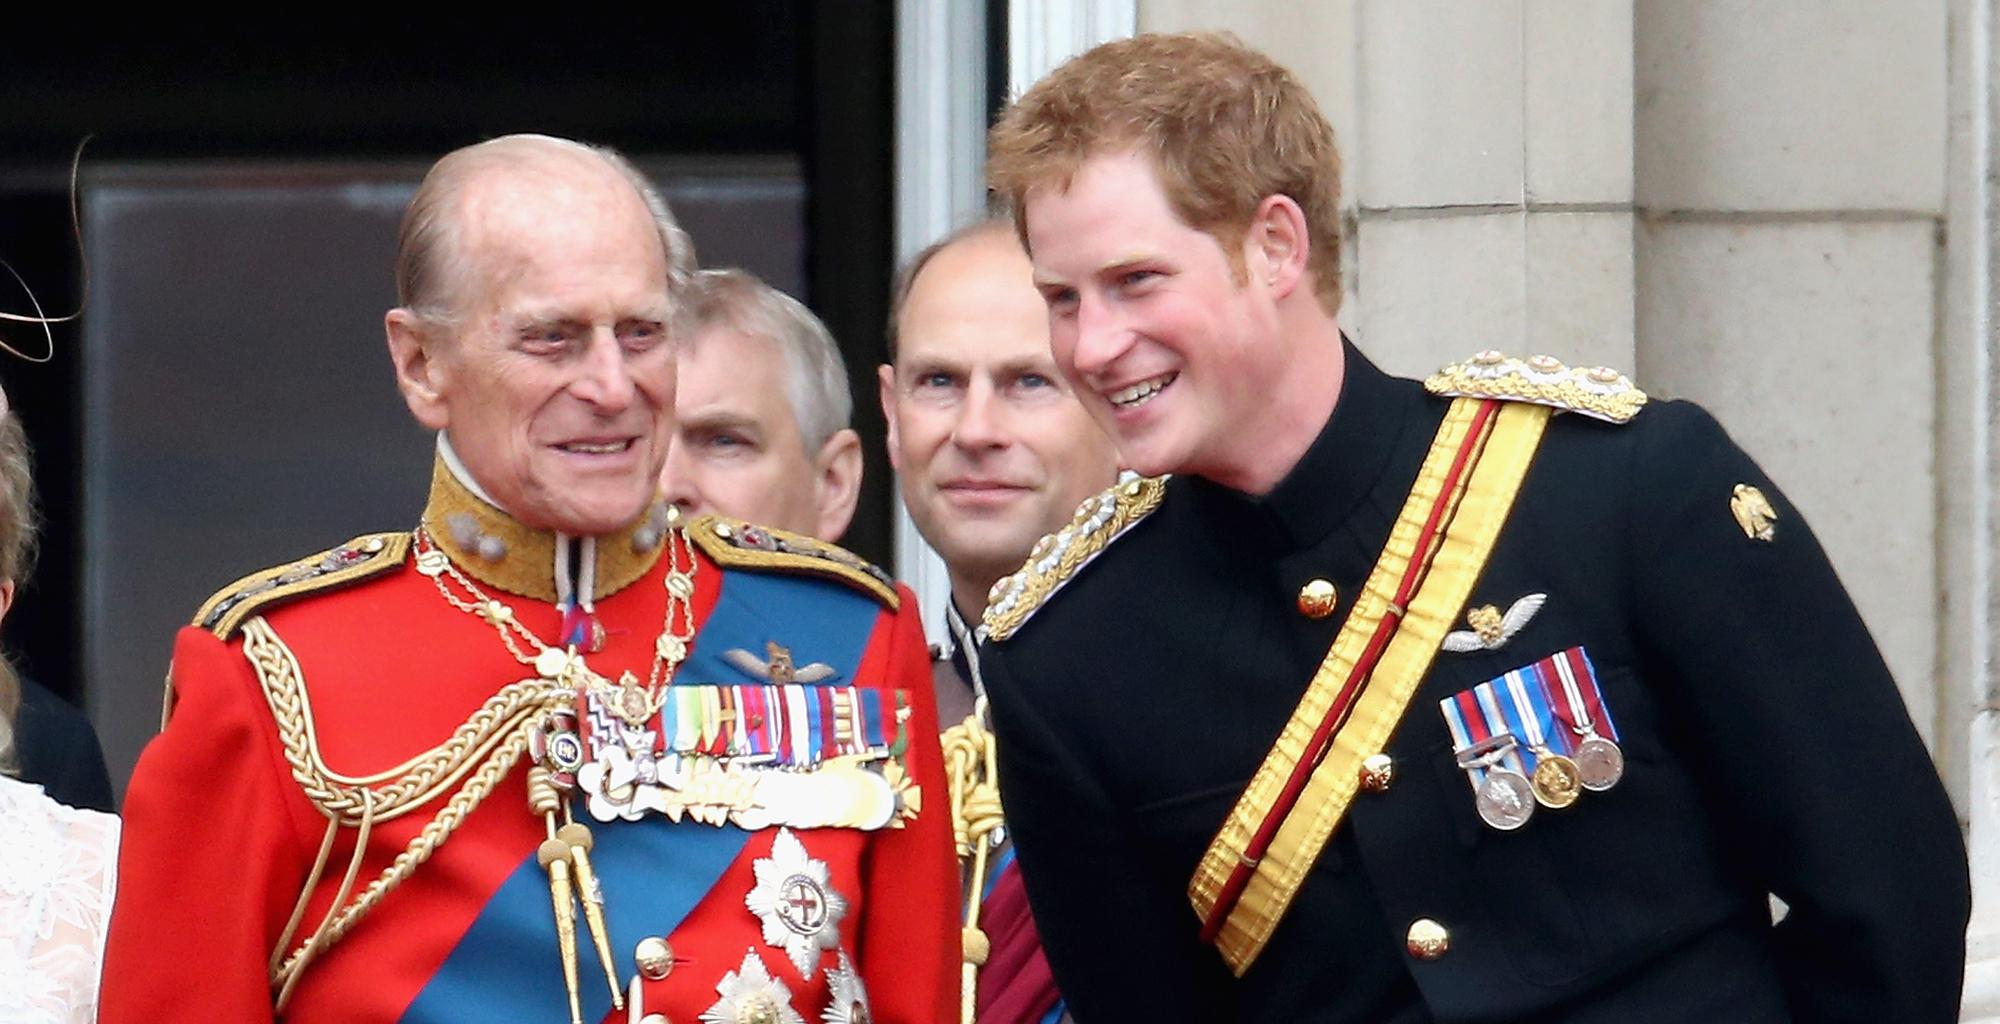 Prince Harry Confirmed To Be At Prince Philip's April 17 Funeral - Here's Why Meghan Will Not Also Attend!